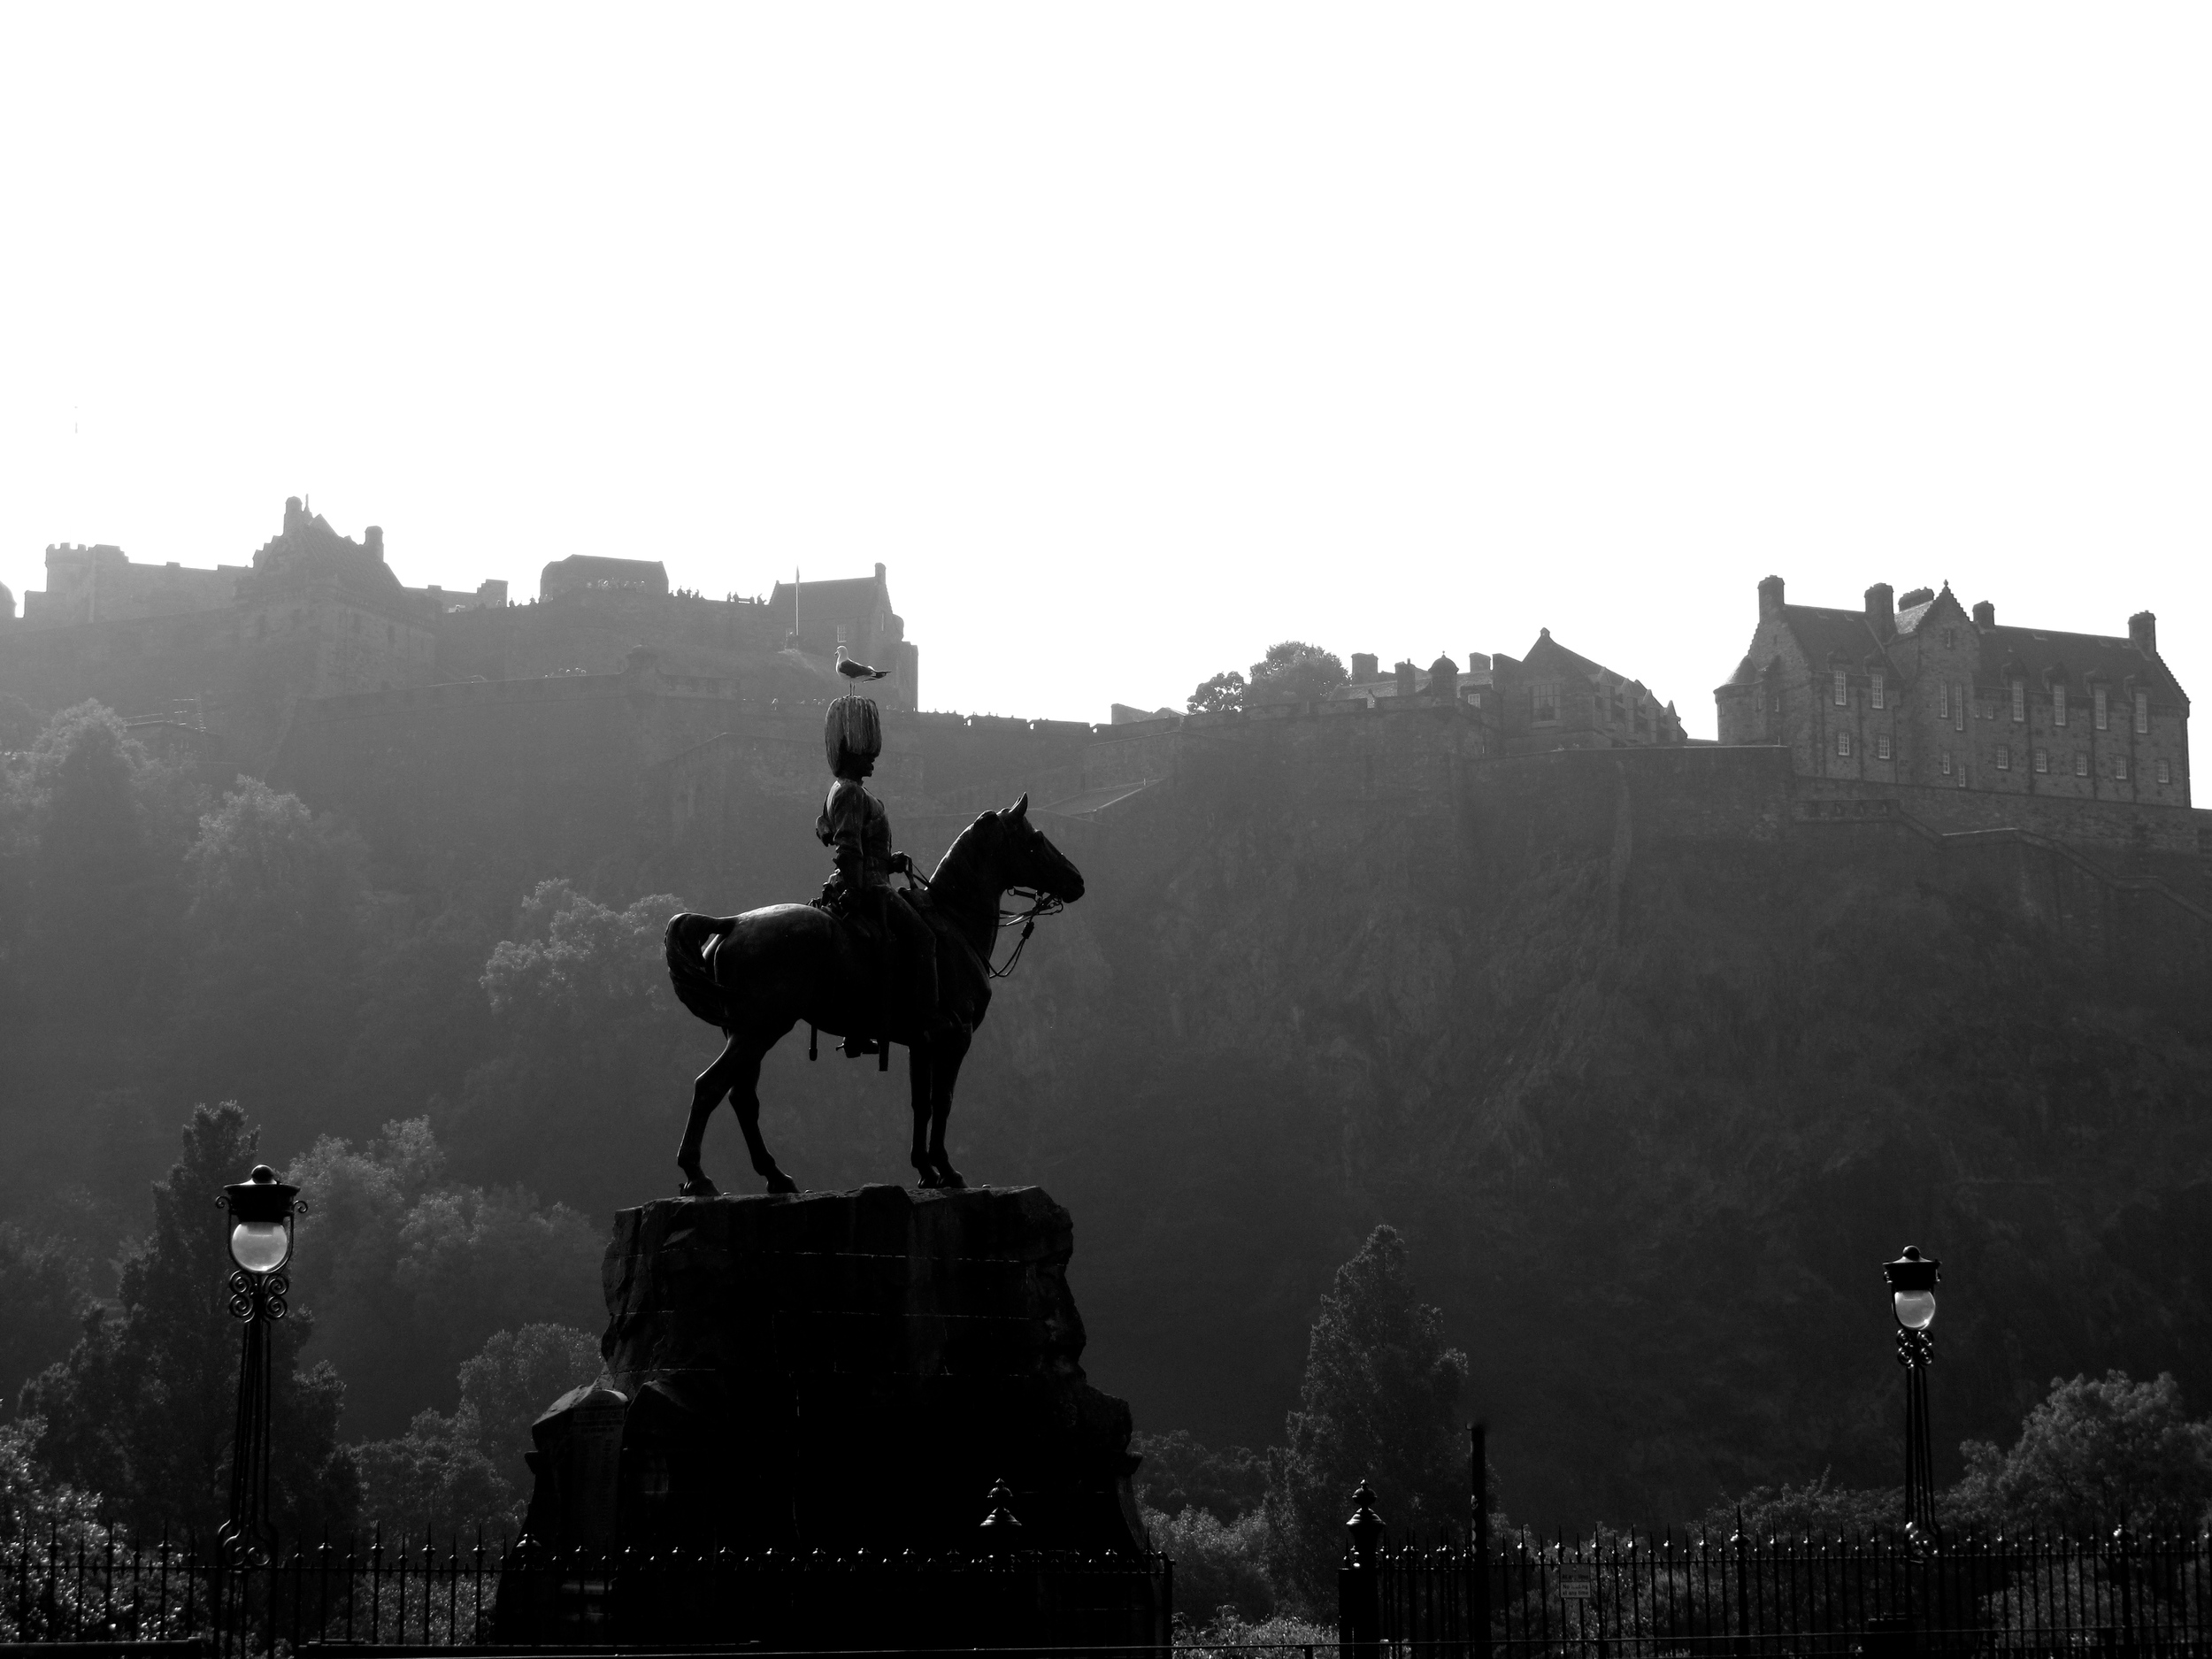 View of the castle in the morning, and an equestrian statue.